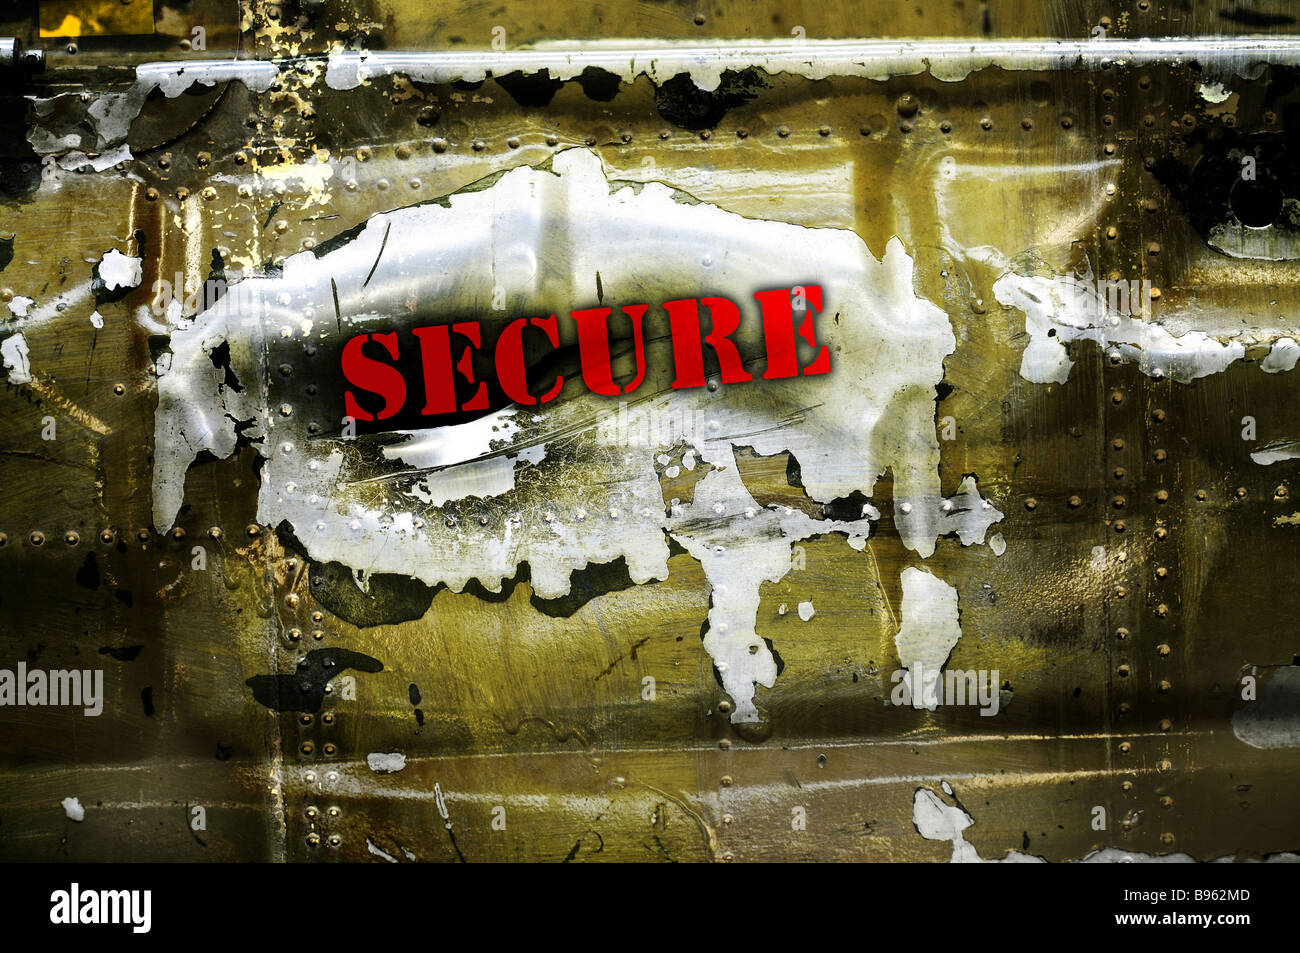 Secure safe - Stock Image